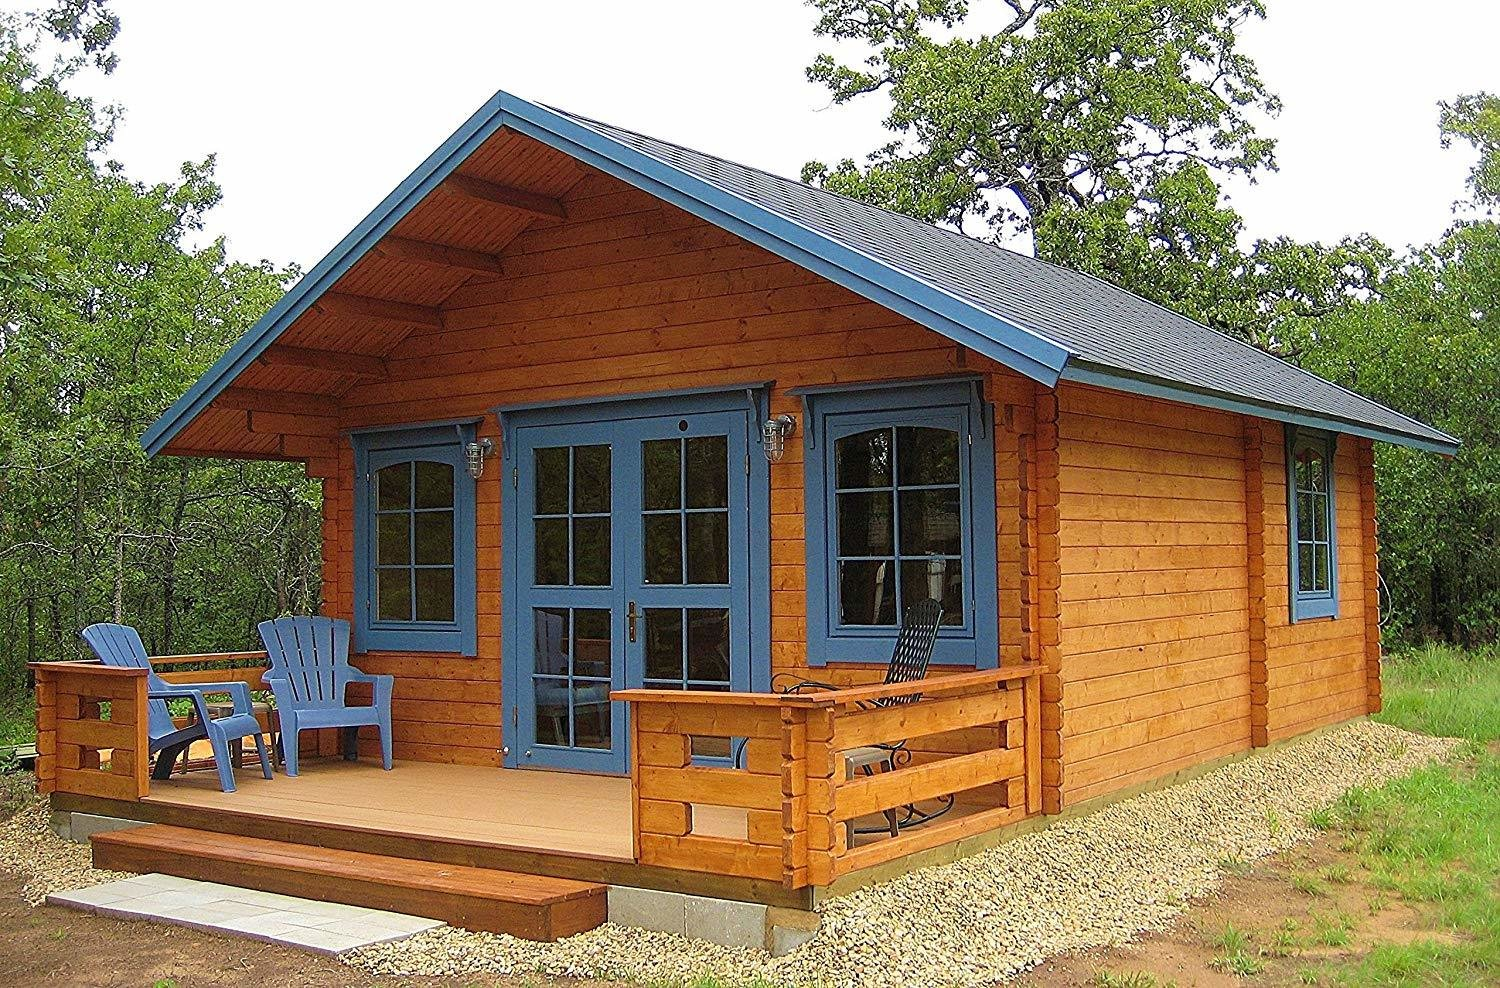 Assembly of the Allwood Getaway Cabin Kit from Lillevilla typically takes only 2-3 days for two adults with minimal tools.  Photo 6 of 7 in 7 Tiny Homes You Can Buy on Amazon